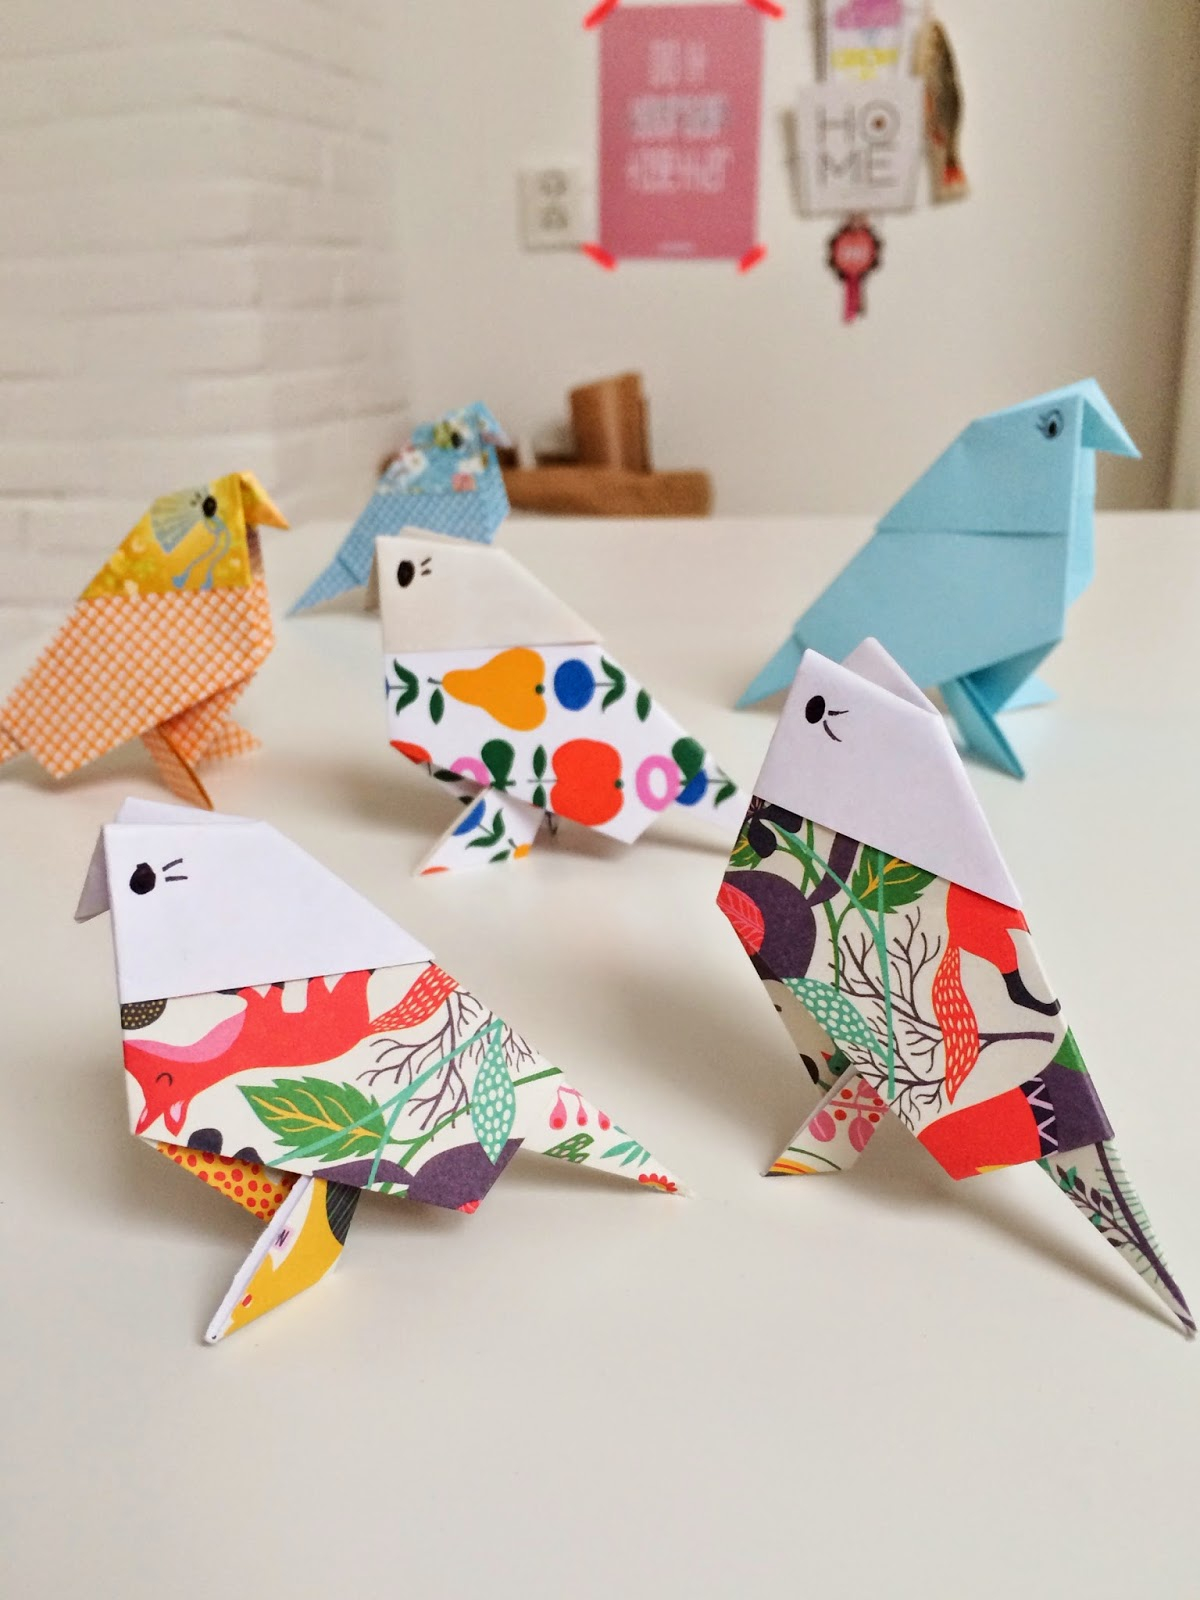 Origami Crafts For Kids 15 Kid Friendly Origami Crafts Bright Star Kids